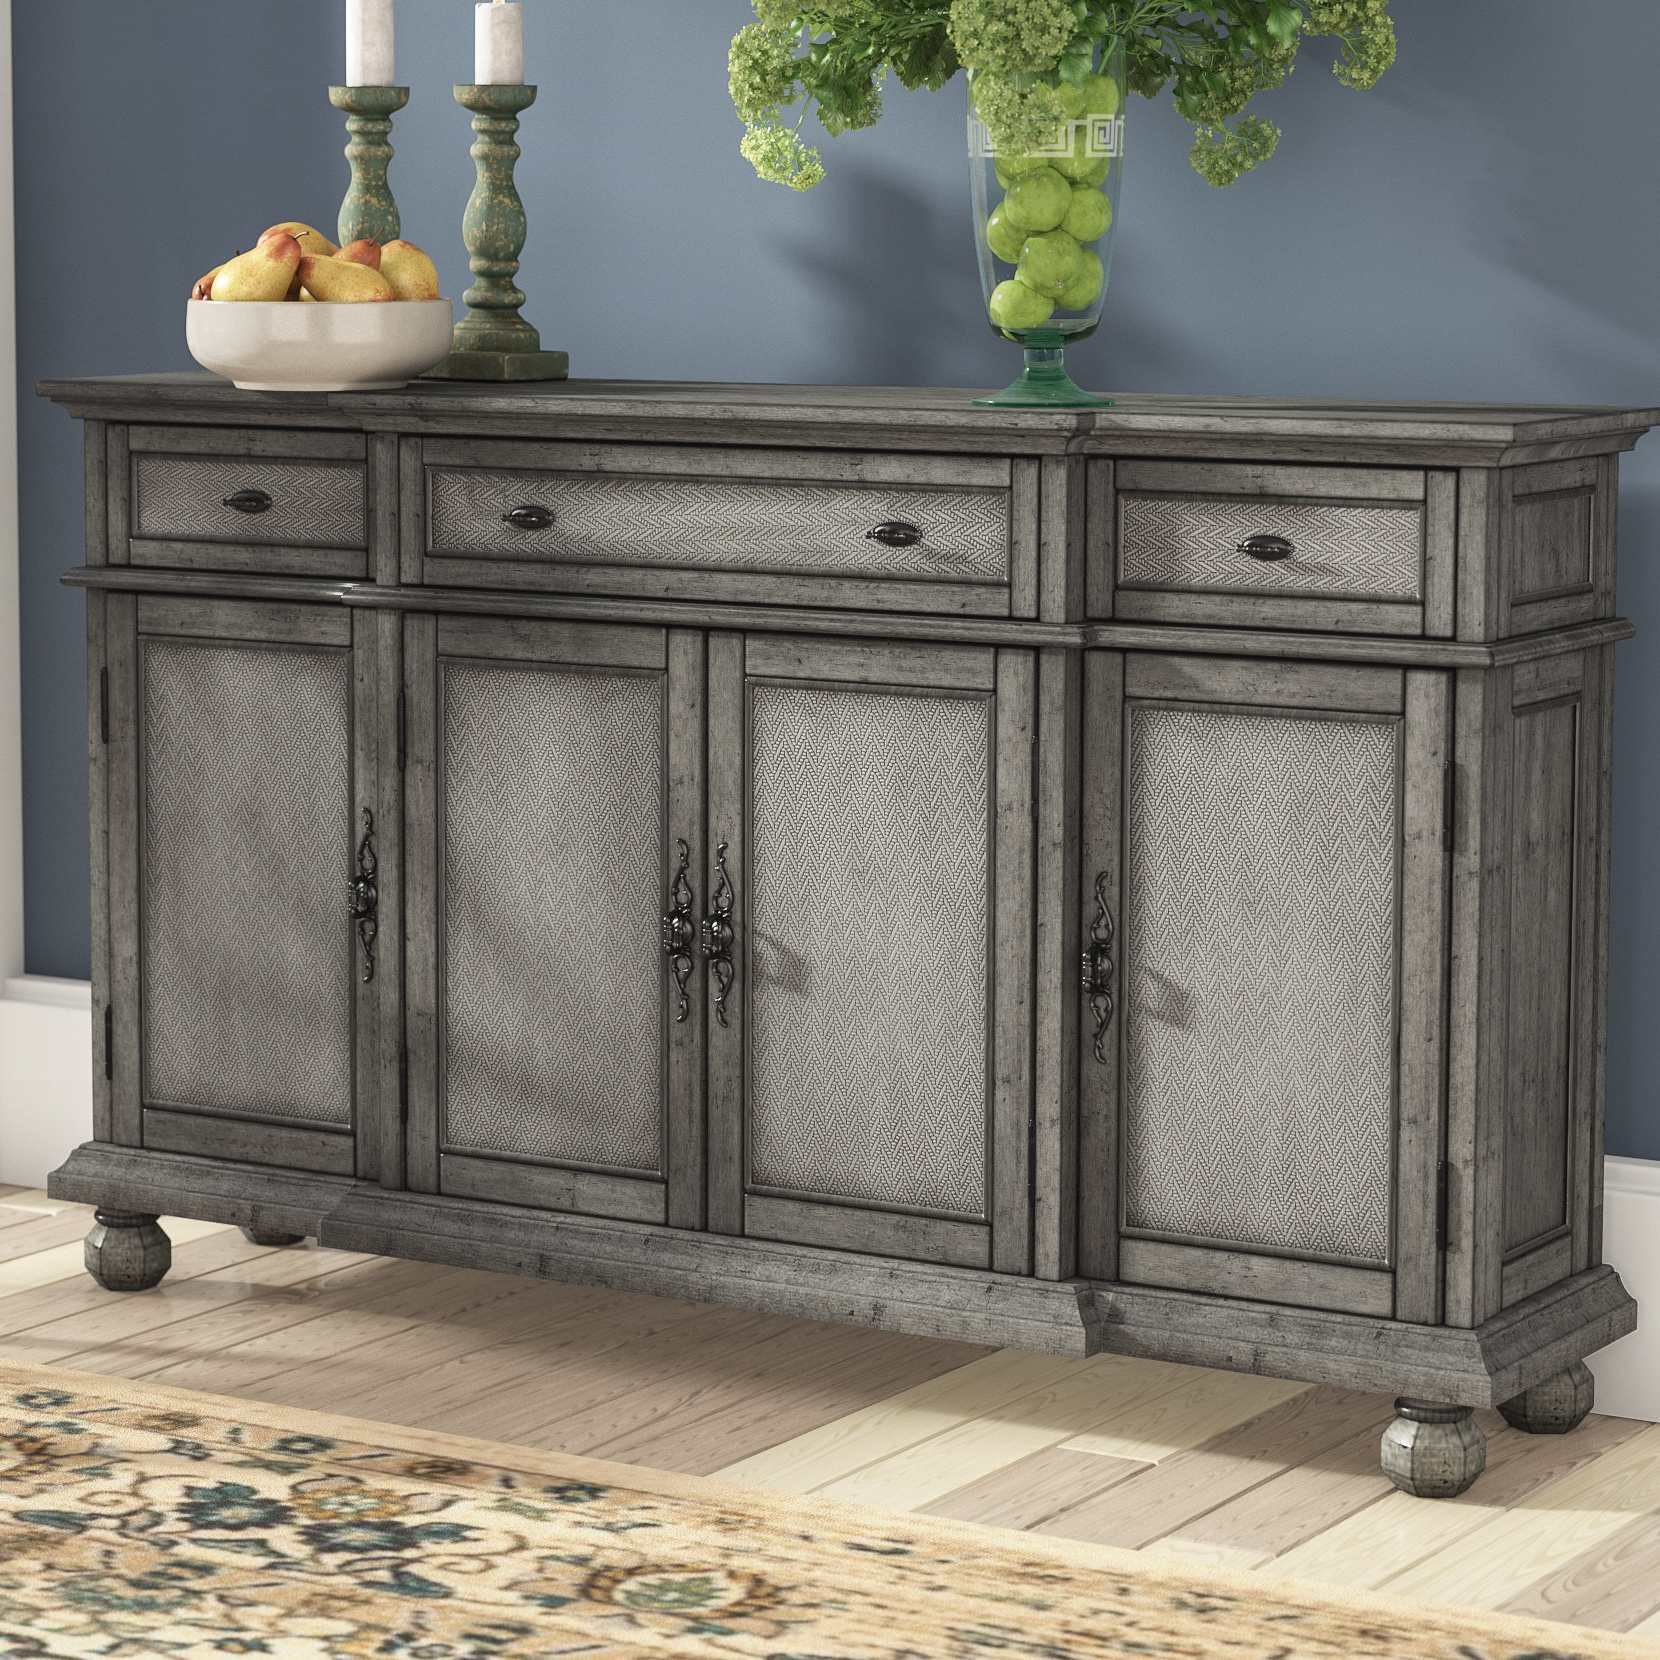 Abhinav Credenzas Throughout Most Recently Released 70 Inch Credenza You'll Love In (View 8 of 20)